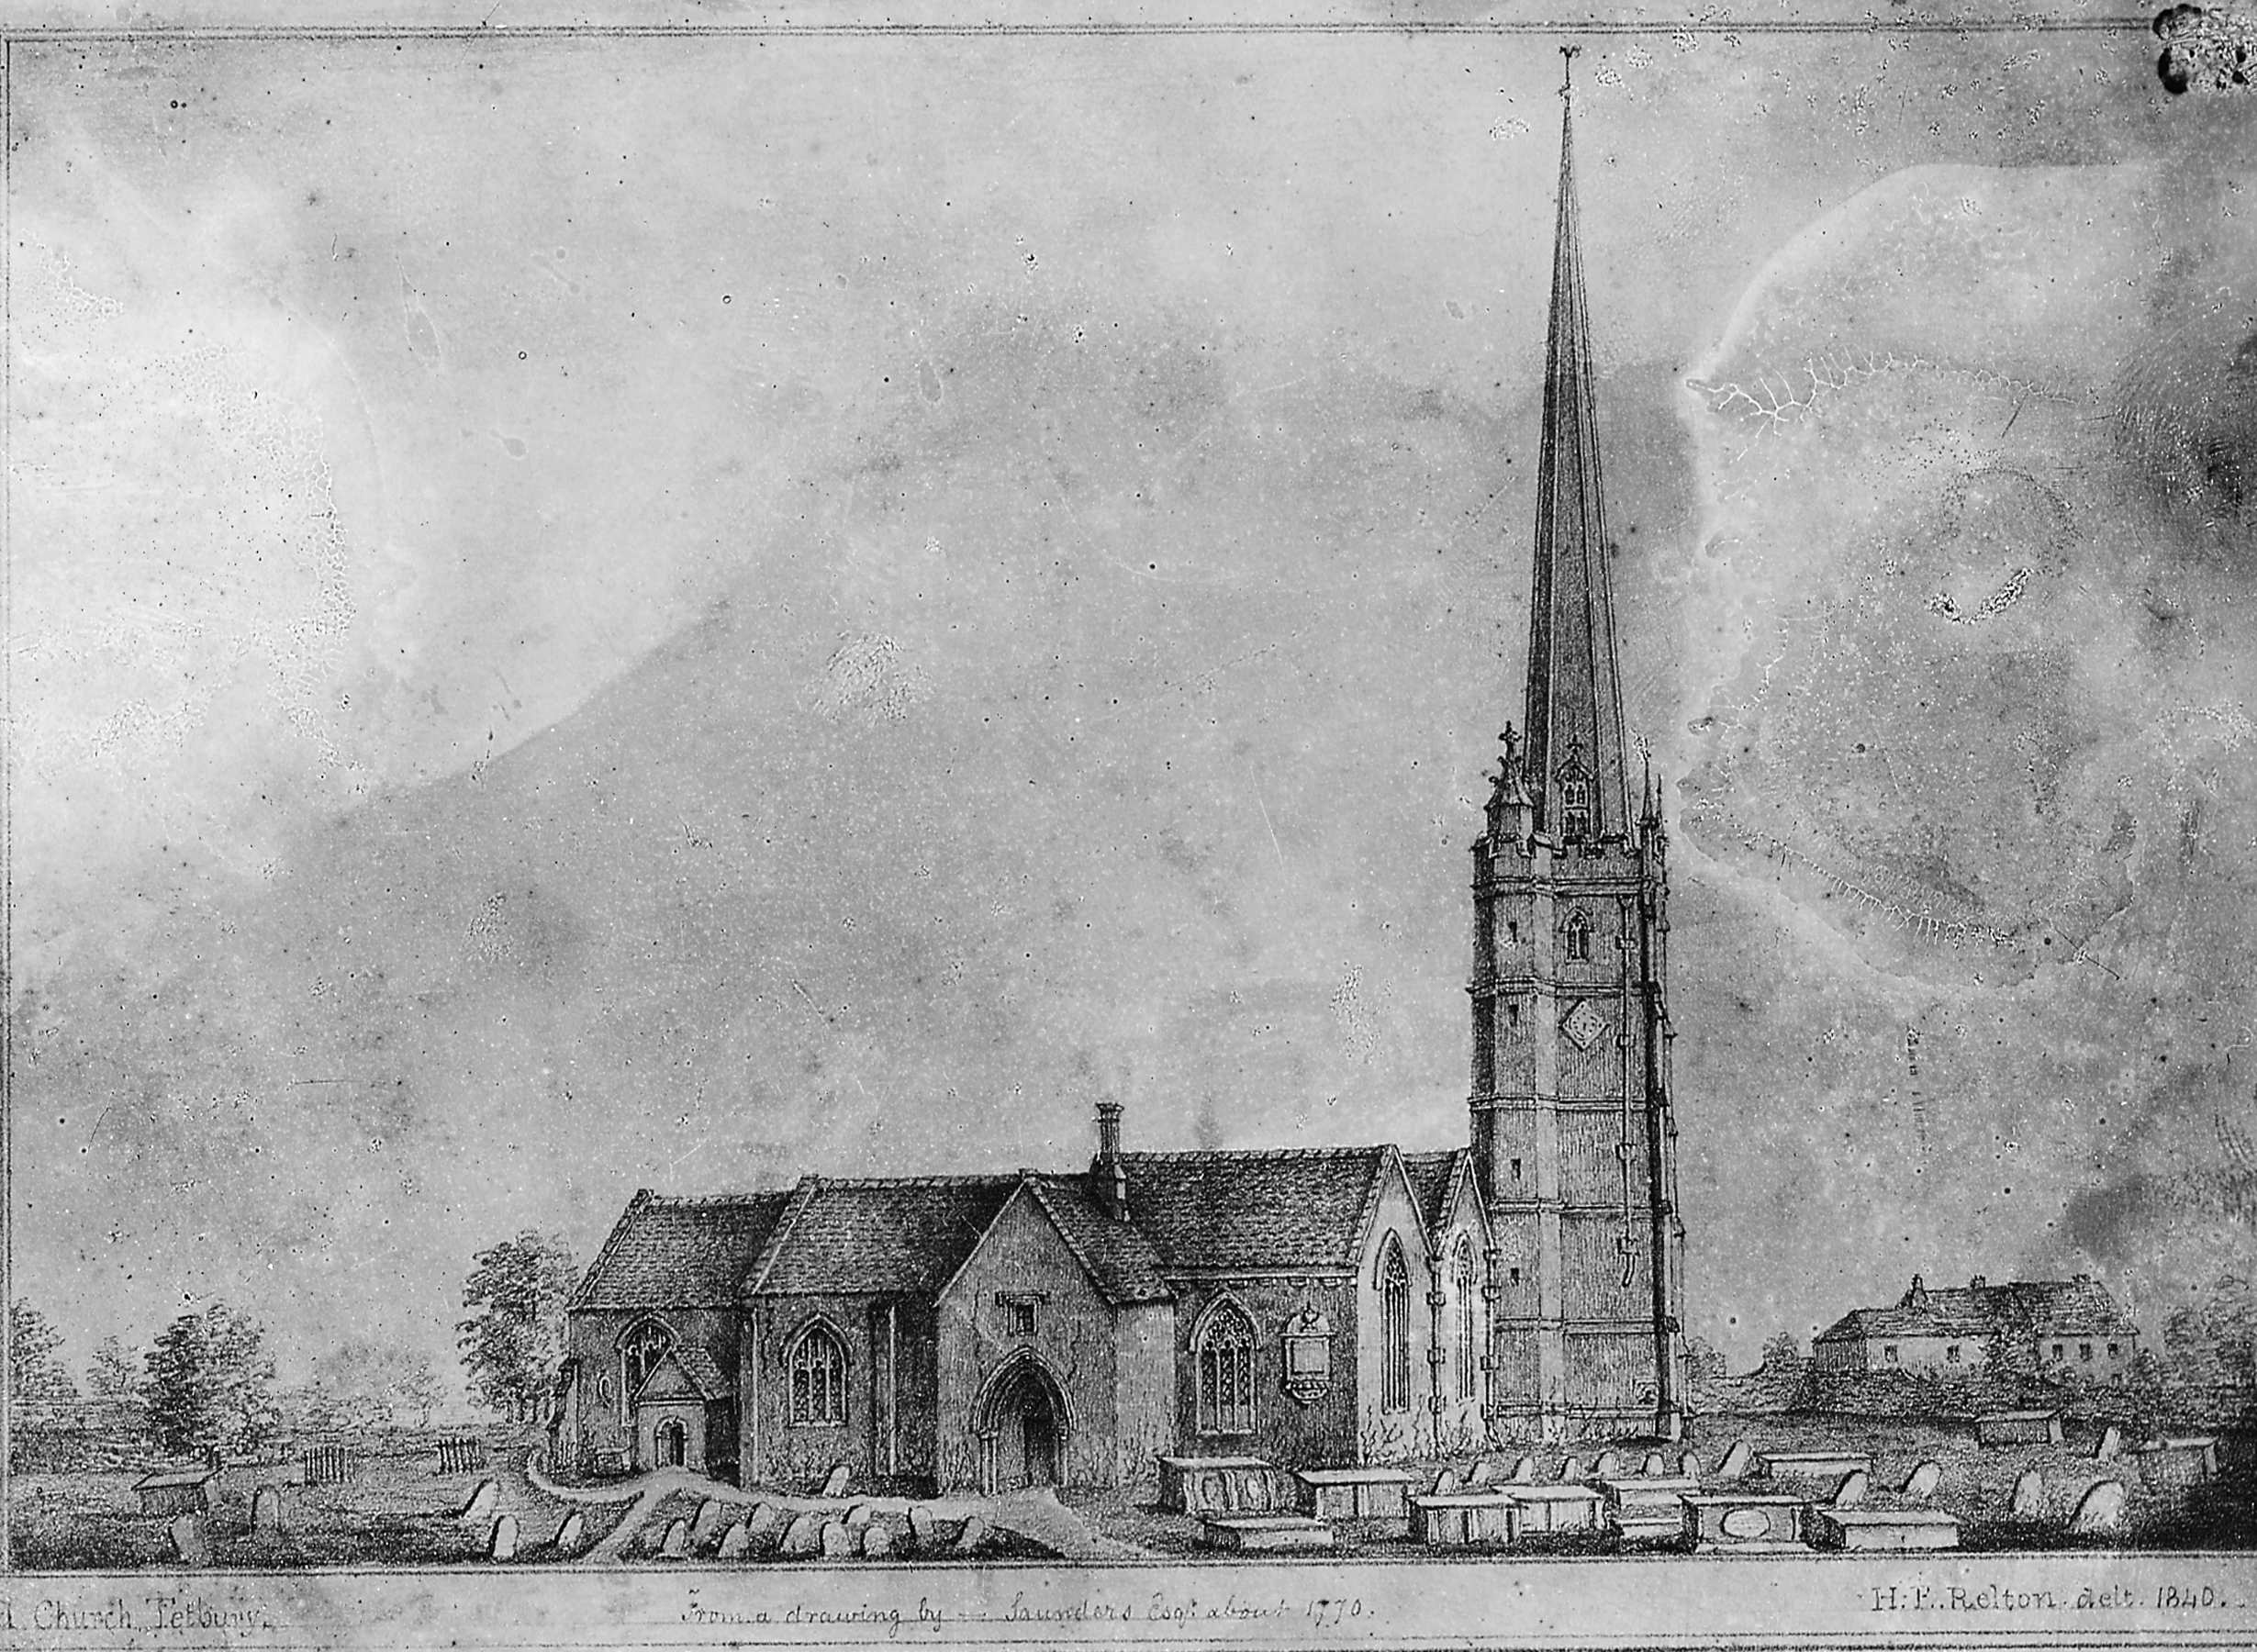 Sketch of the Medieval church